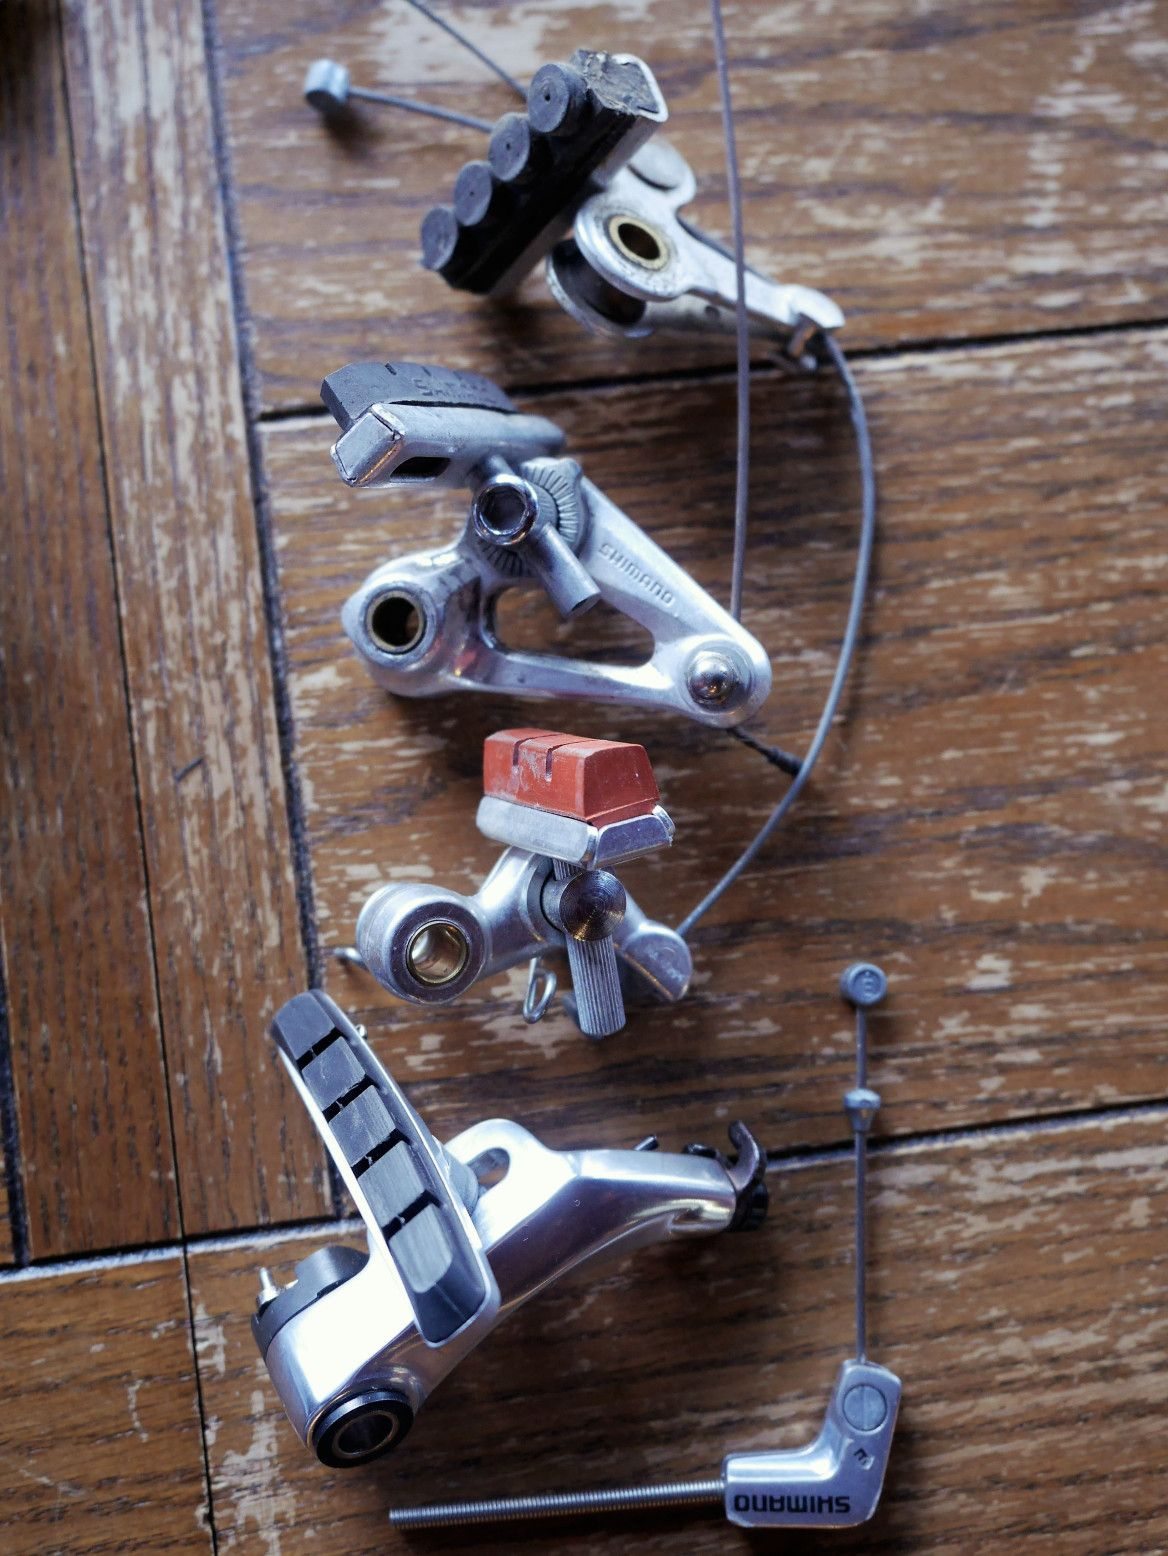 Mafac cantilevers | Restoring Vintage Bicycles from the Hand